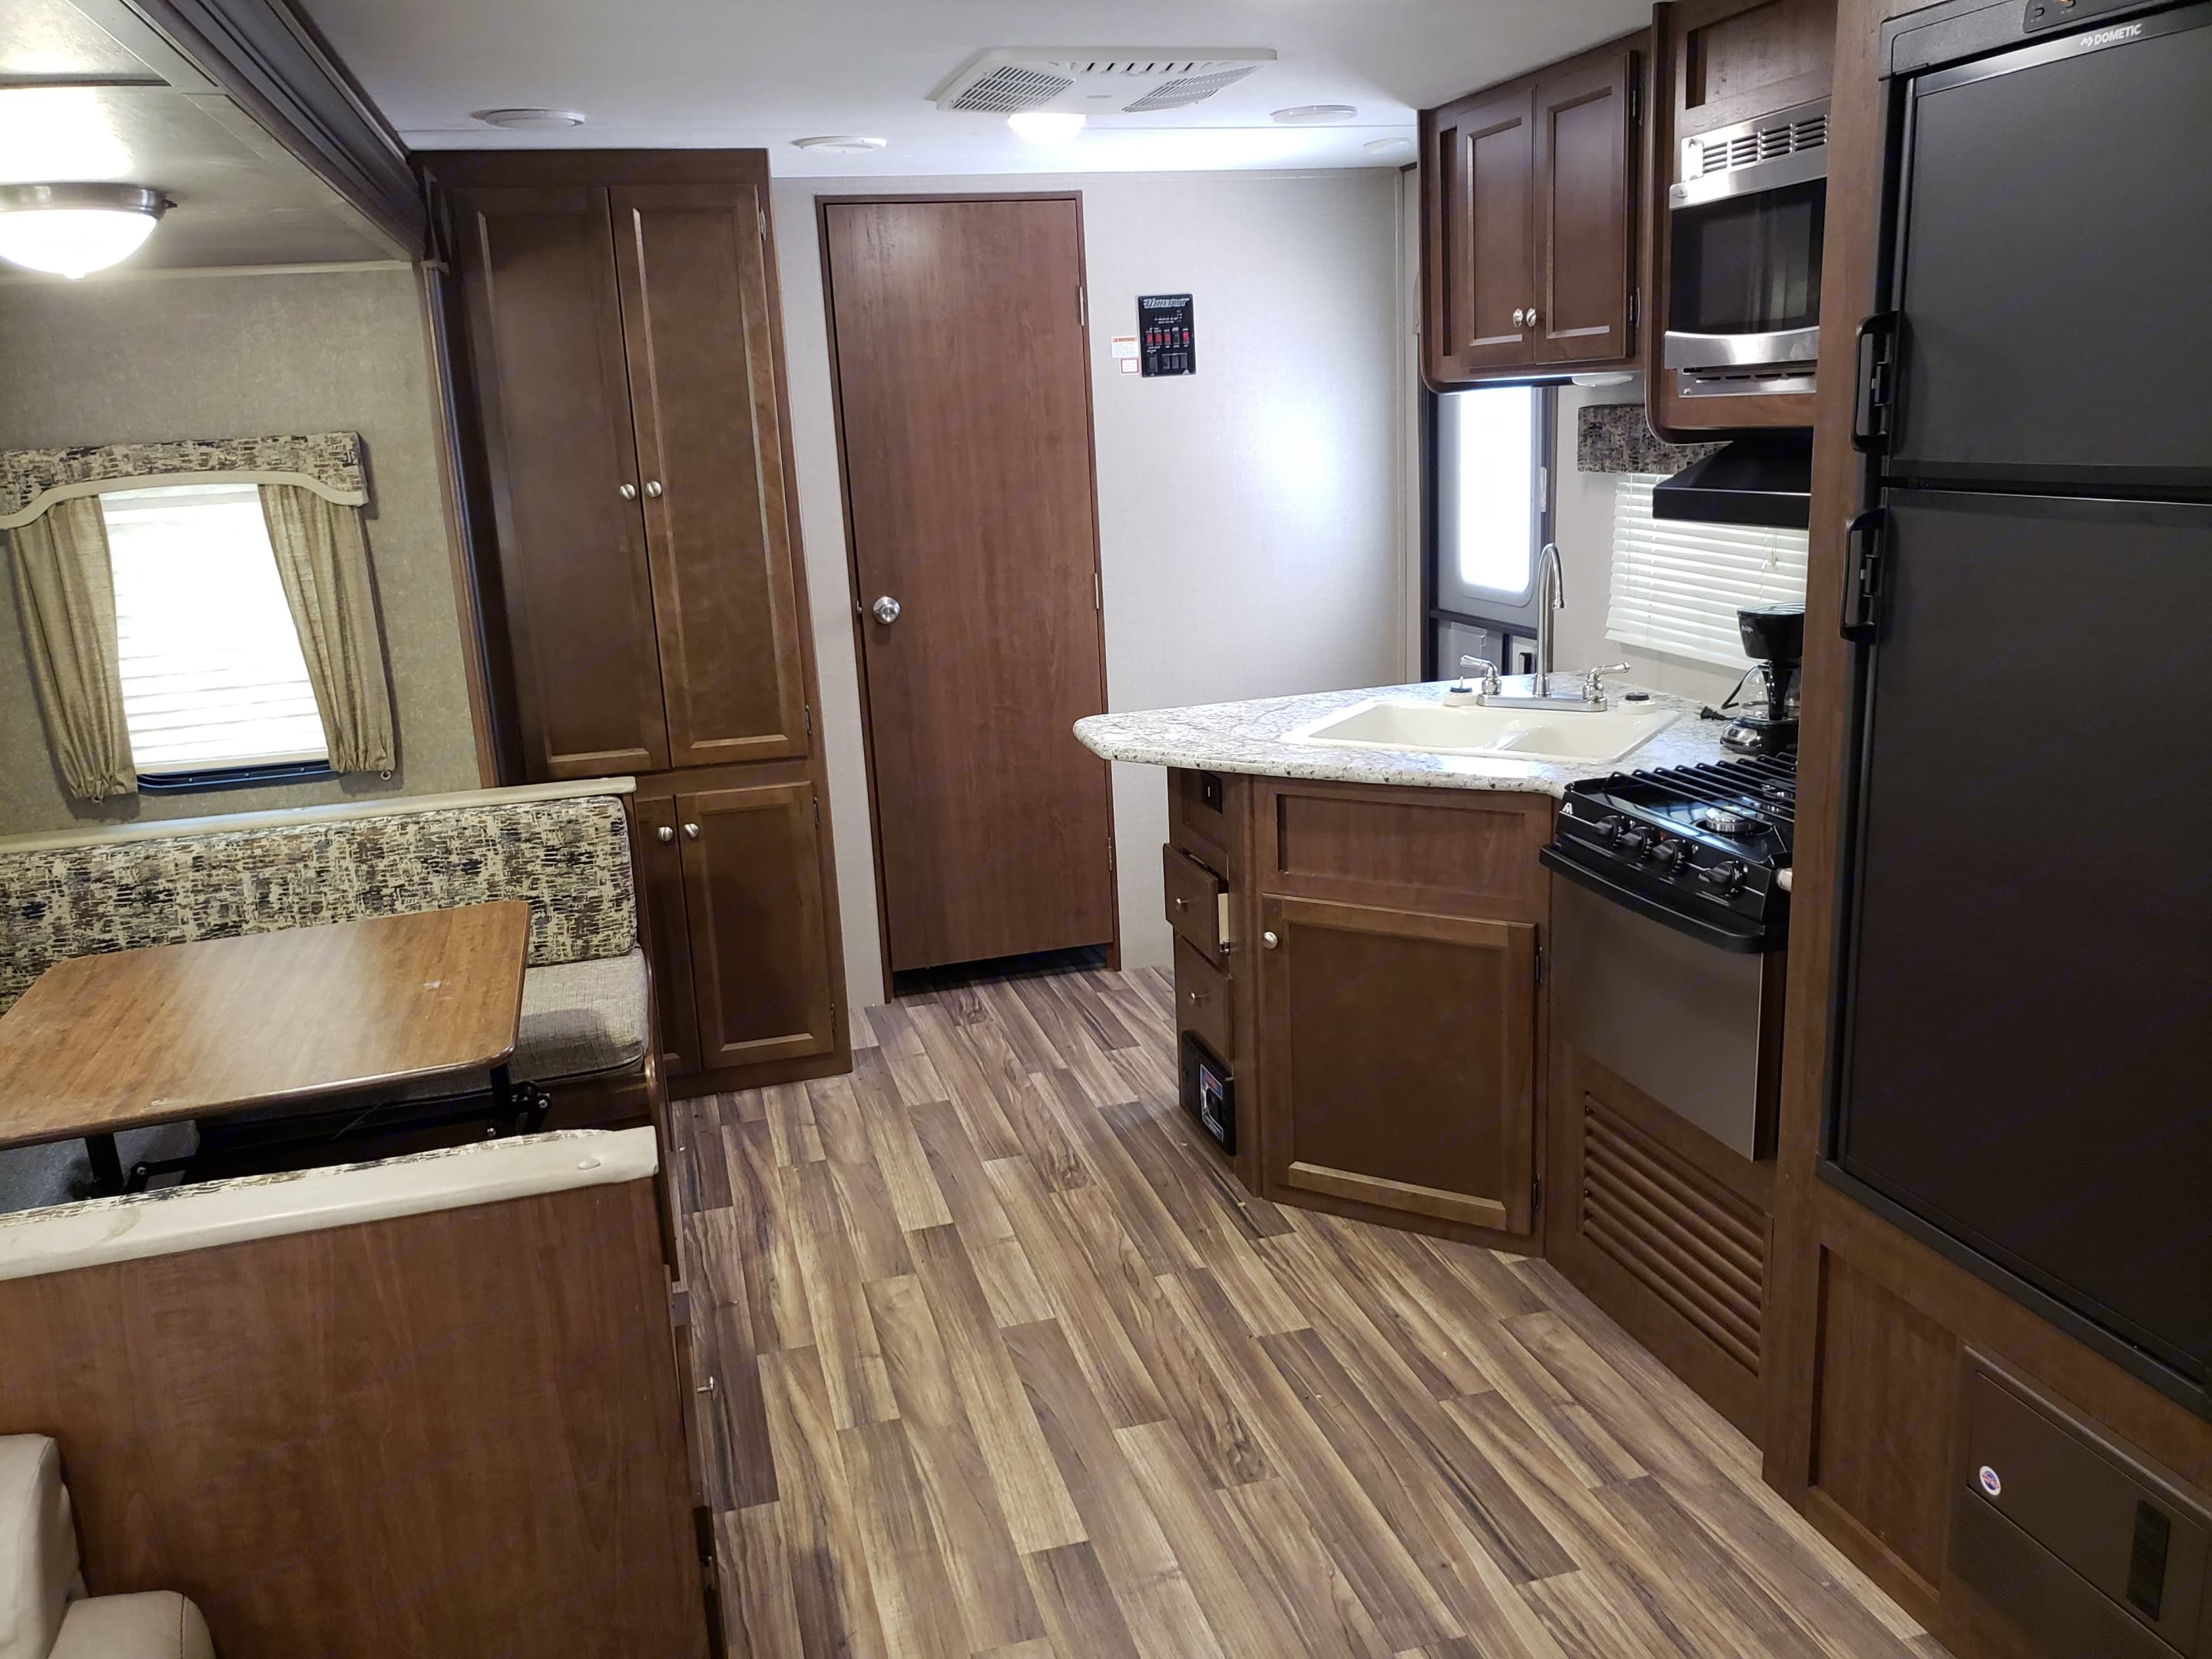 """Spacious kitchen and dining area including: U-shaped bench with table, Sink, Gas Stovetop/Oven, Microwave, Fridge/Freezer, Closet/Cabinet Space, and Door leading to the """"Master"""" bedroom.. Keystone Hideout 2017"""